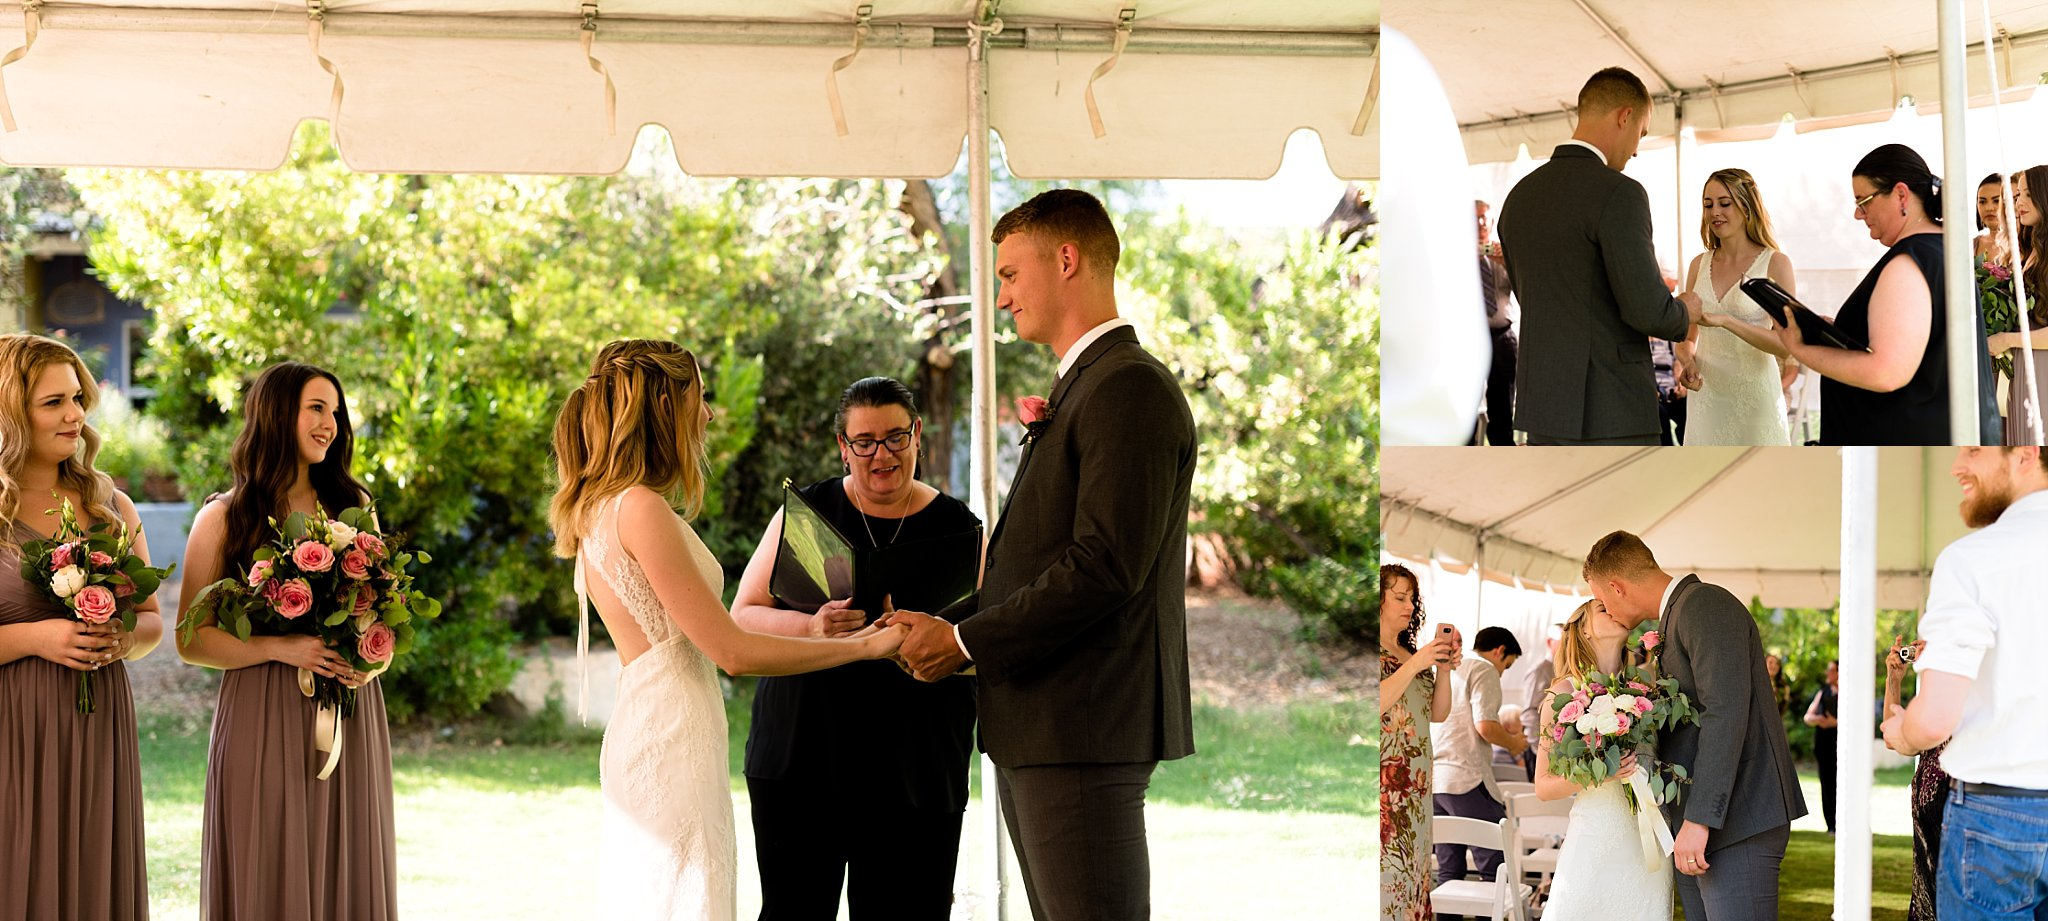 The ceremony was my favorite kind of ceremony; short, sweet, and personal.